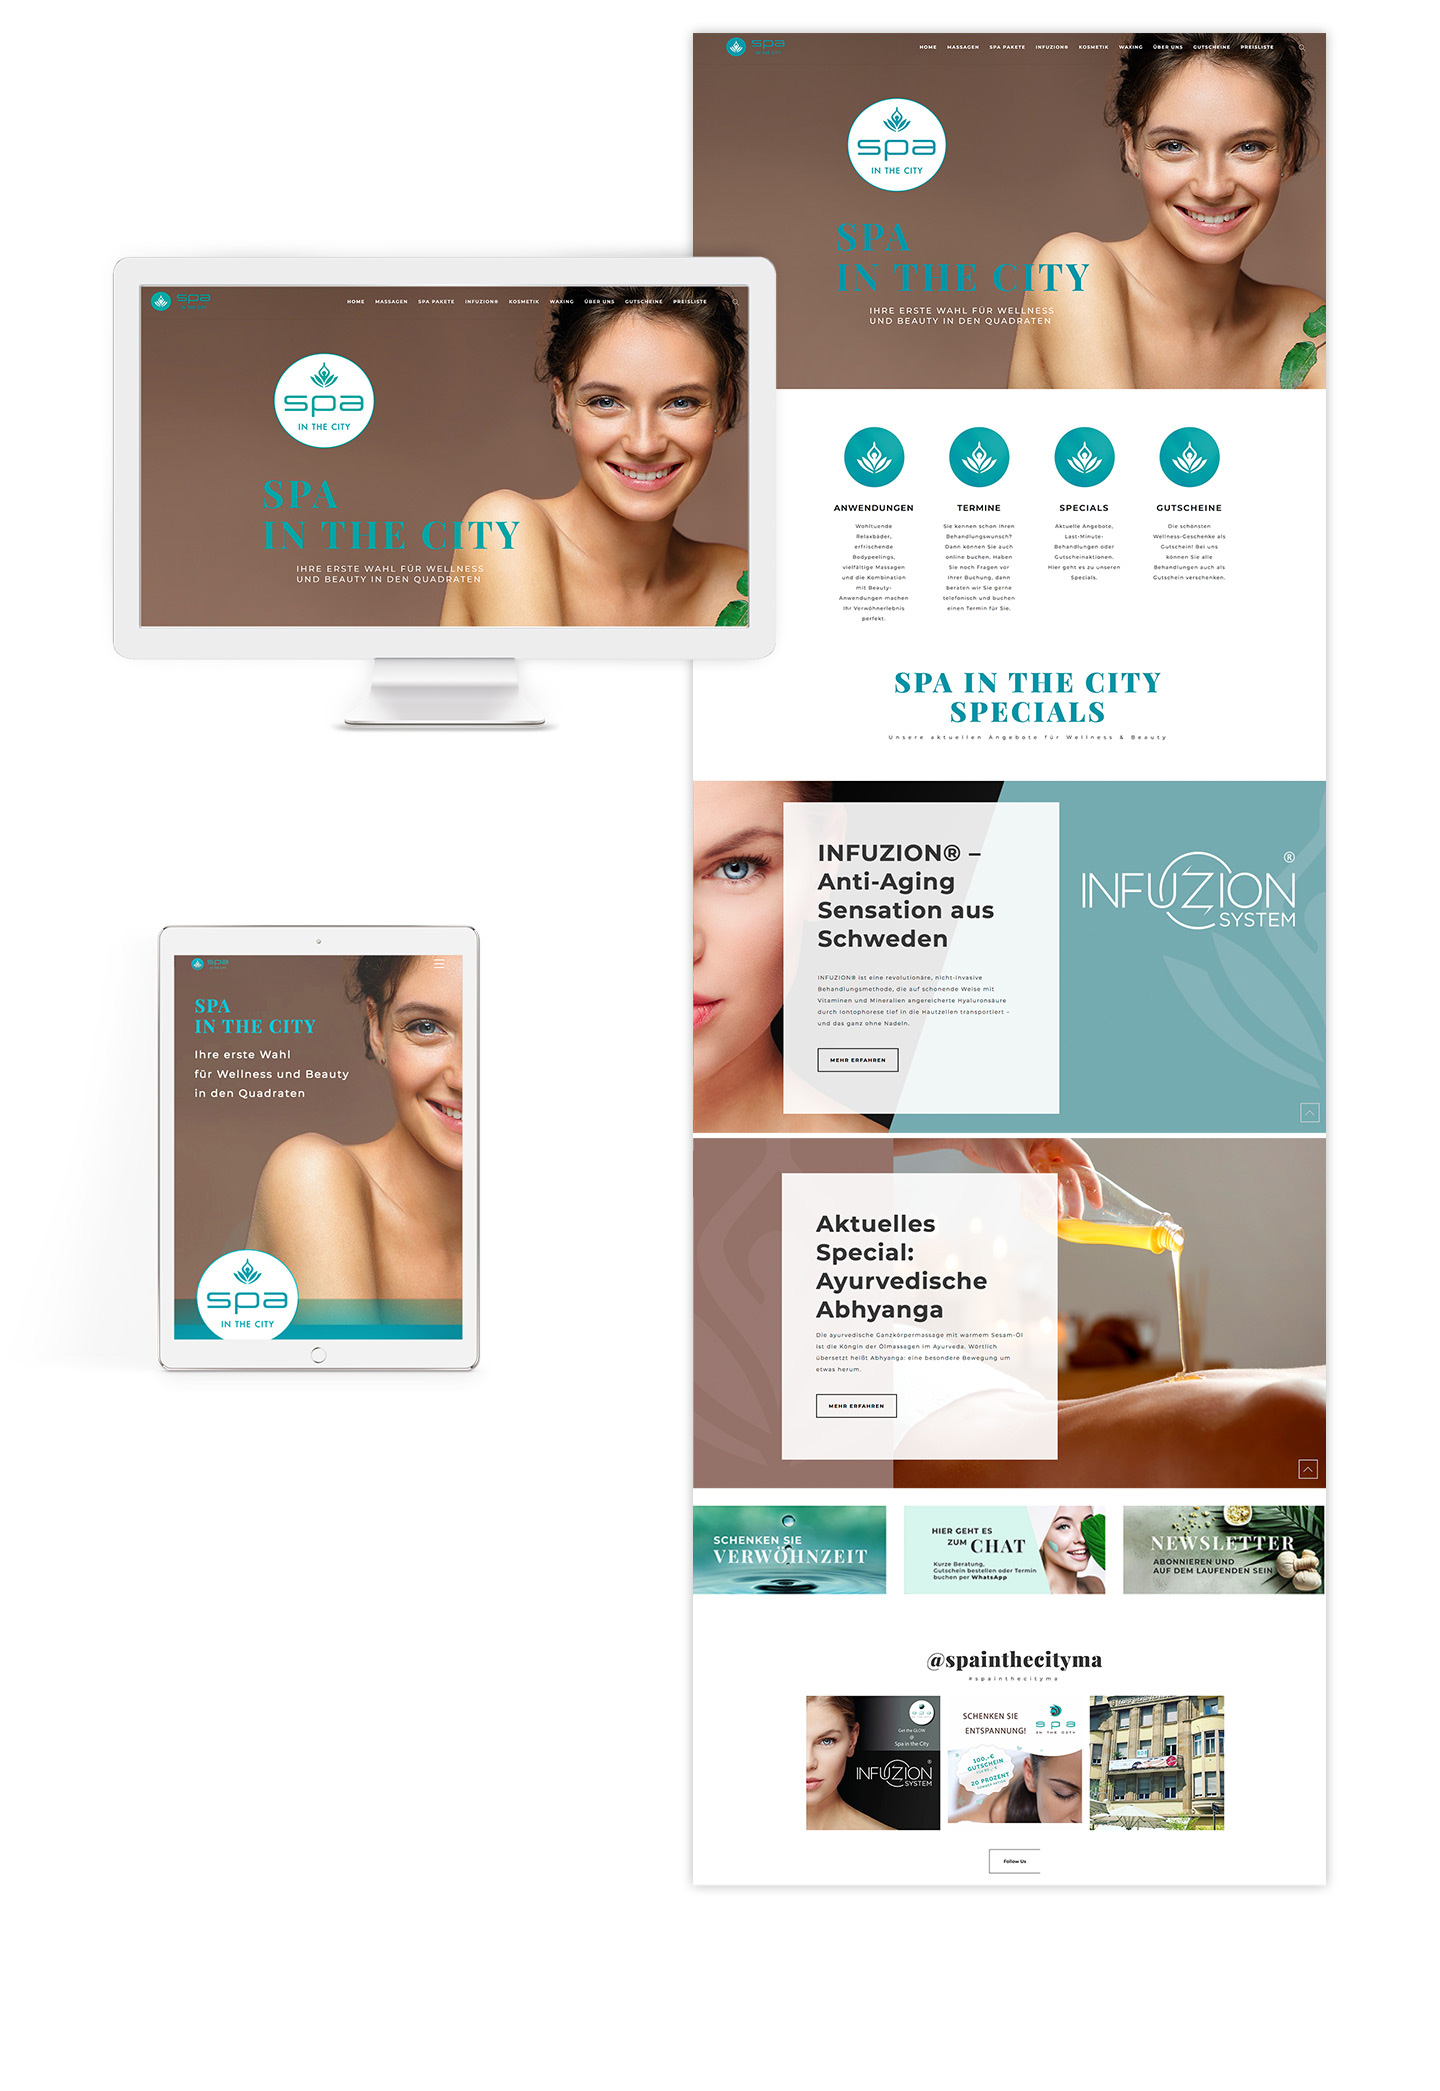 P12-Werbeagentur Webdesign Referenz Spa-in-the-City in Manhheim